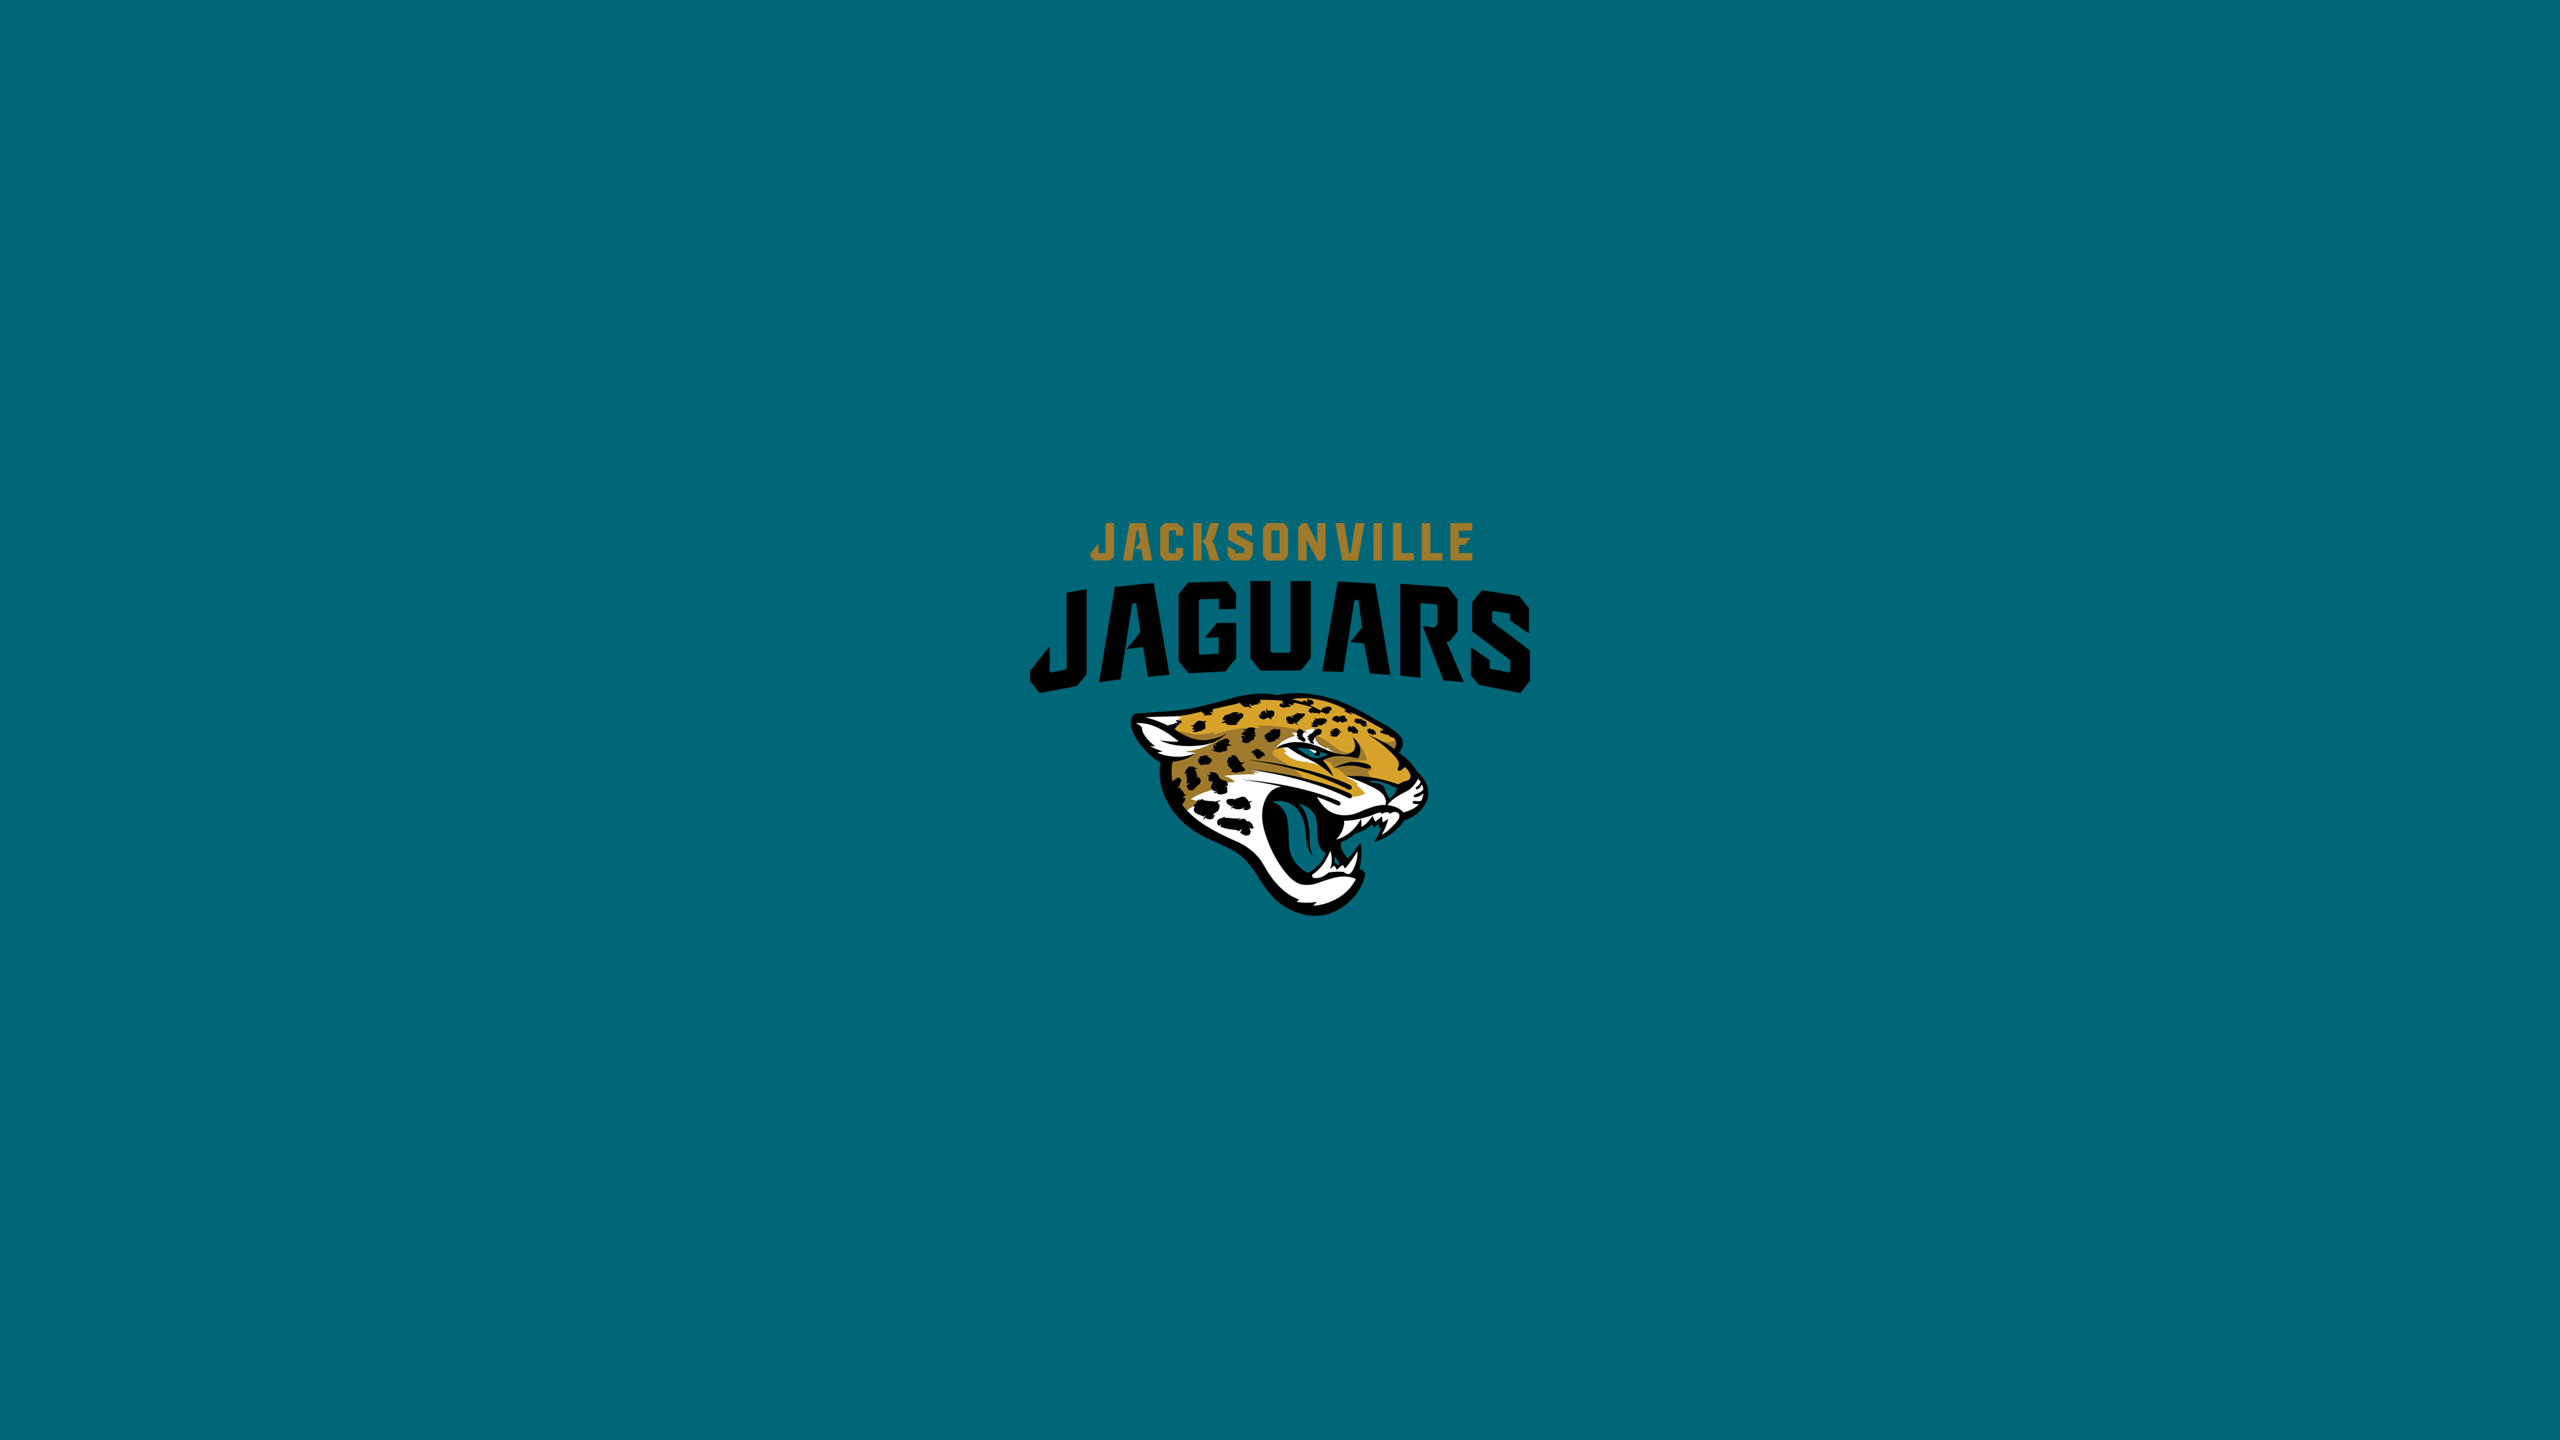 JACKSONVILLE JAGUARS nfl football b wallpaper 2560x1440 157816 2560x1440